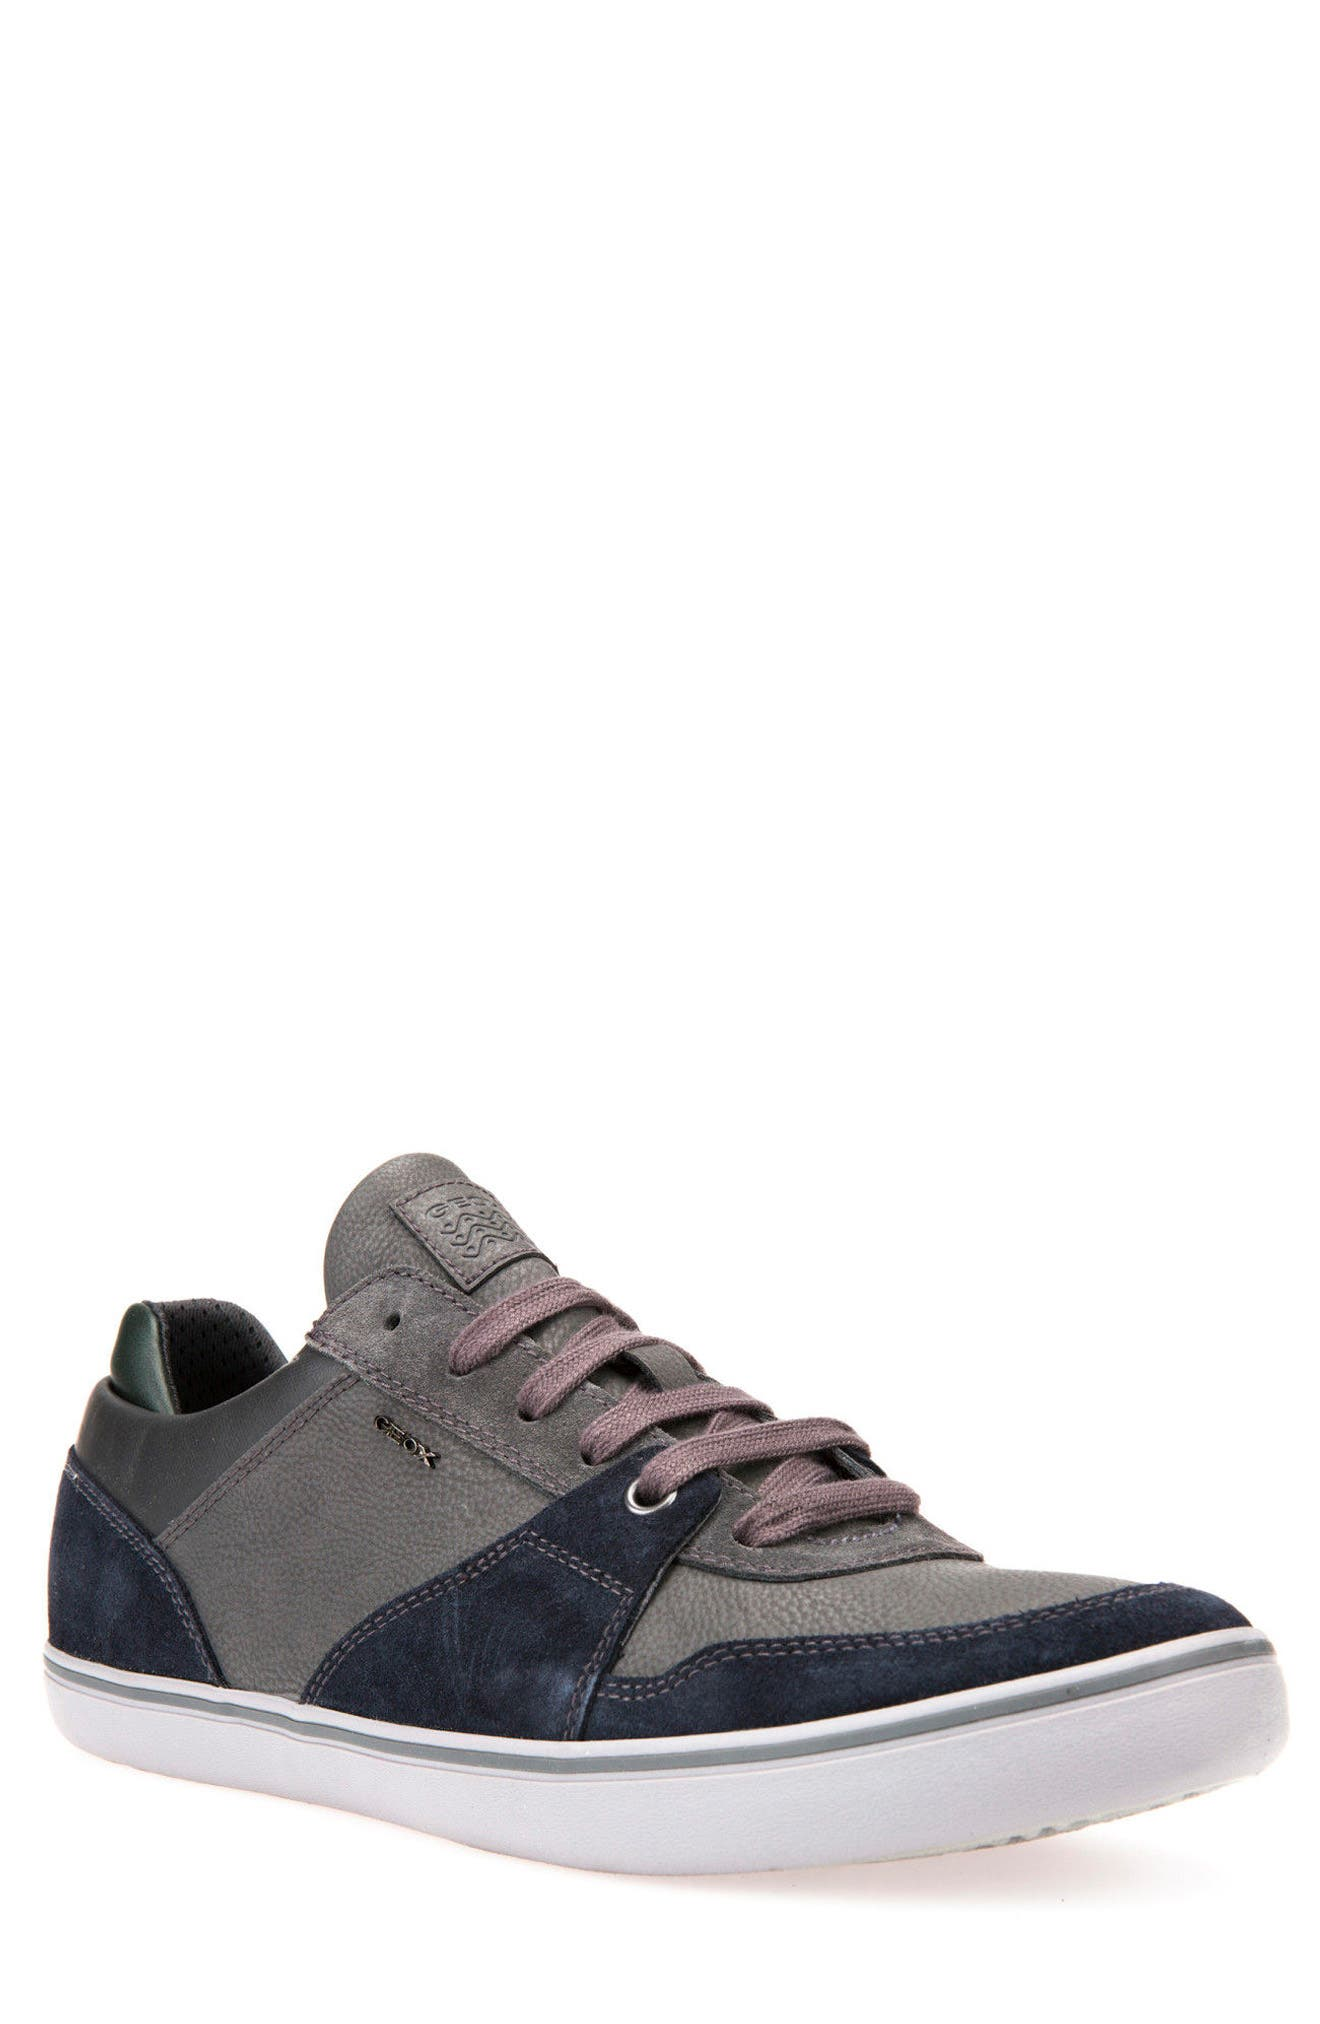 Box 26 Low Top Sneaker,                             Main thumbnail 1, color,                             Navy/ Anthracite